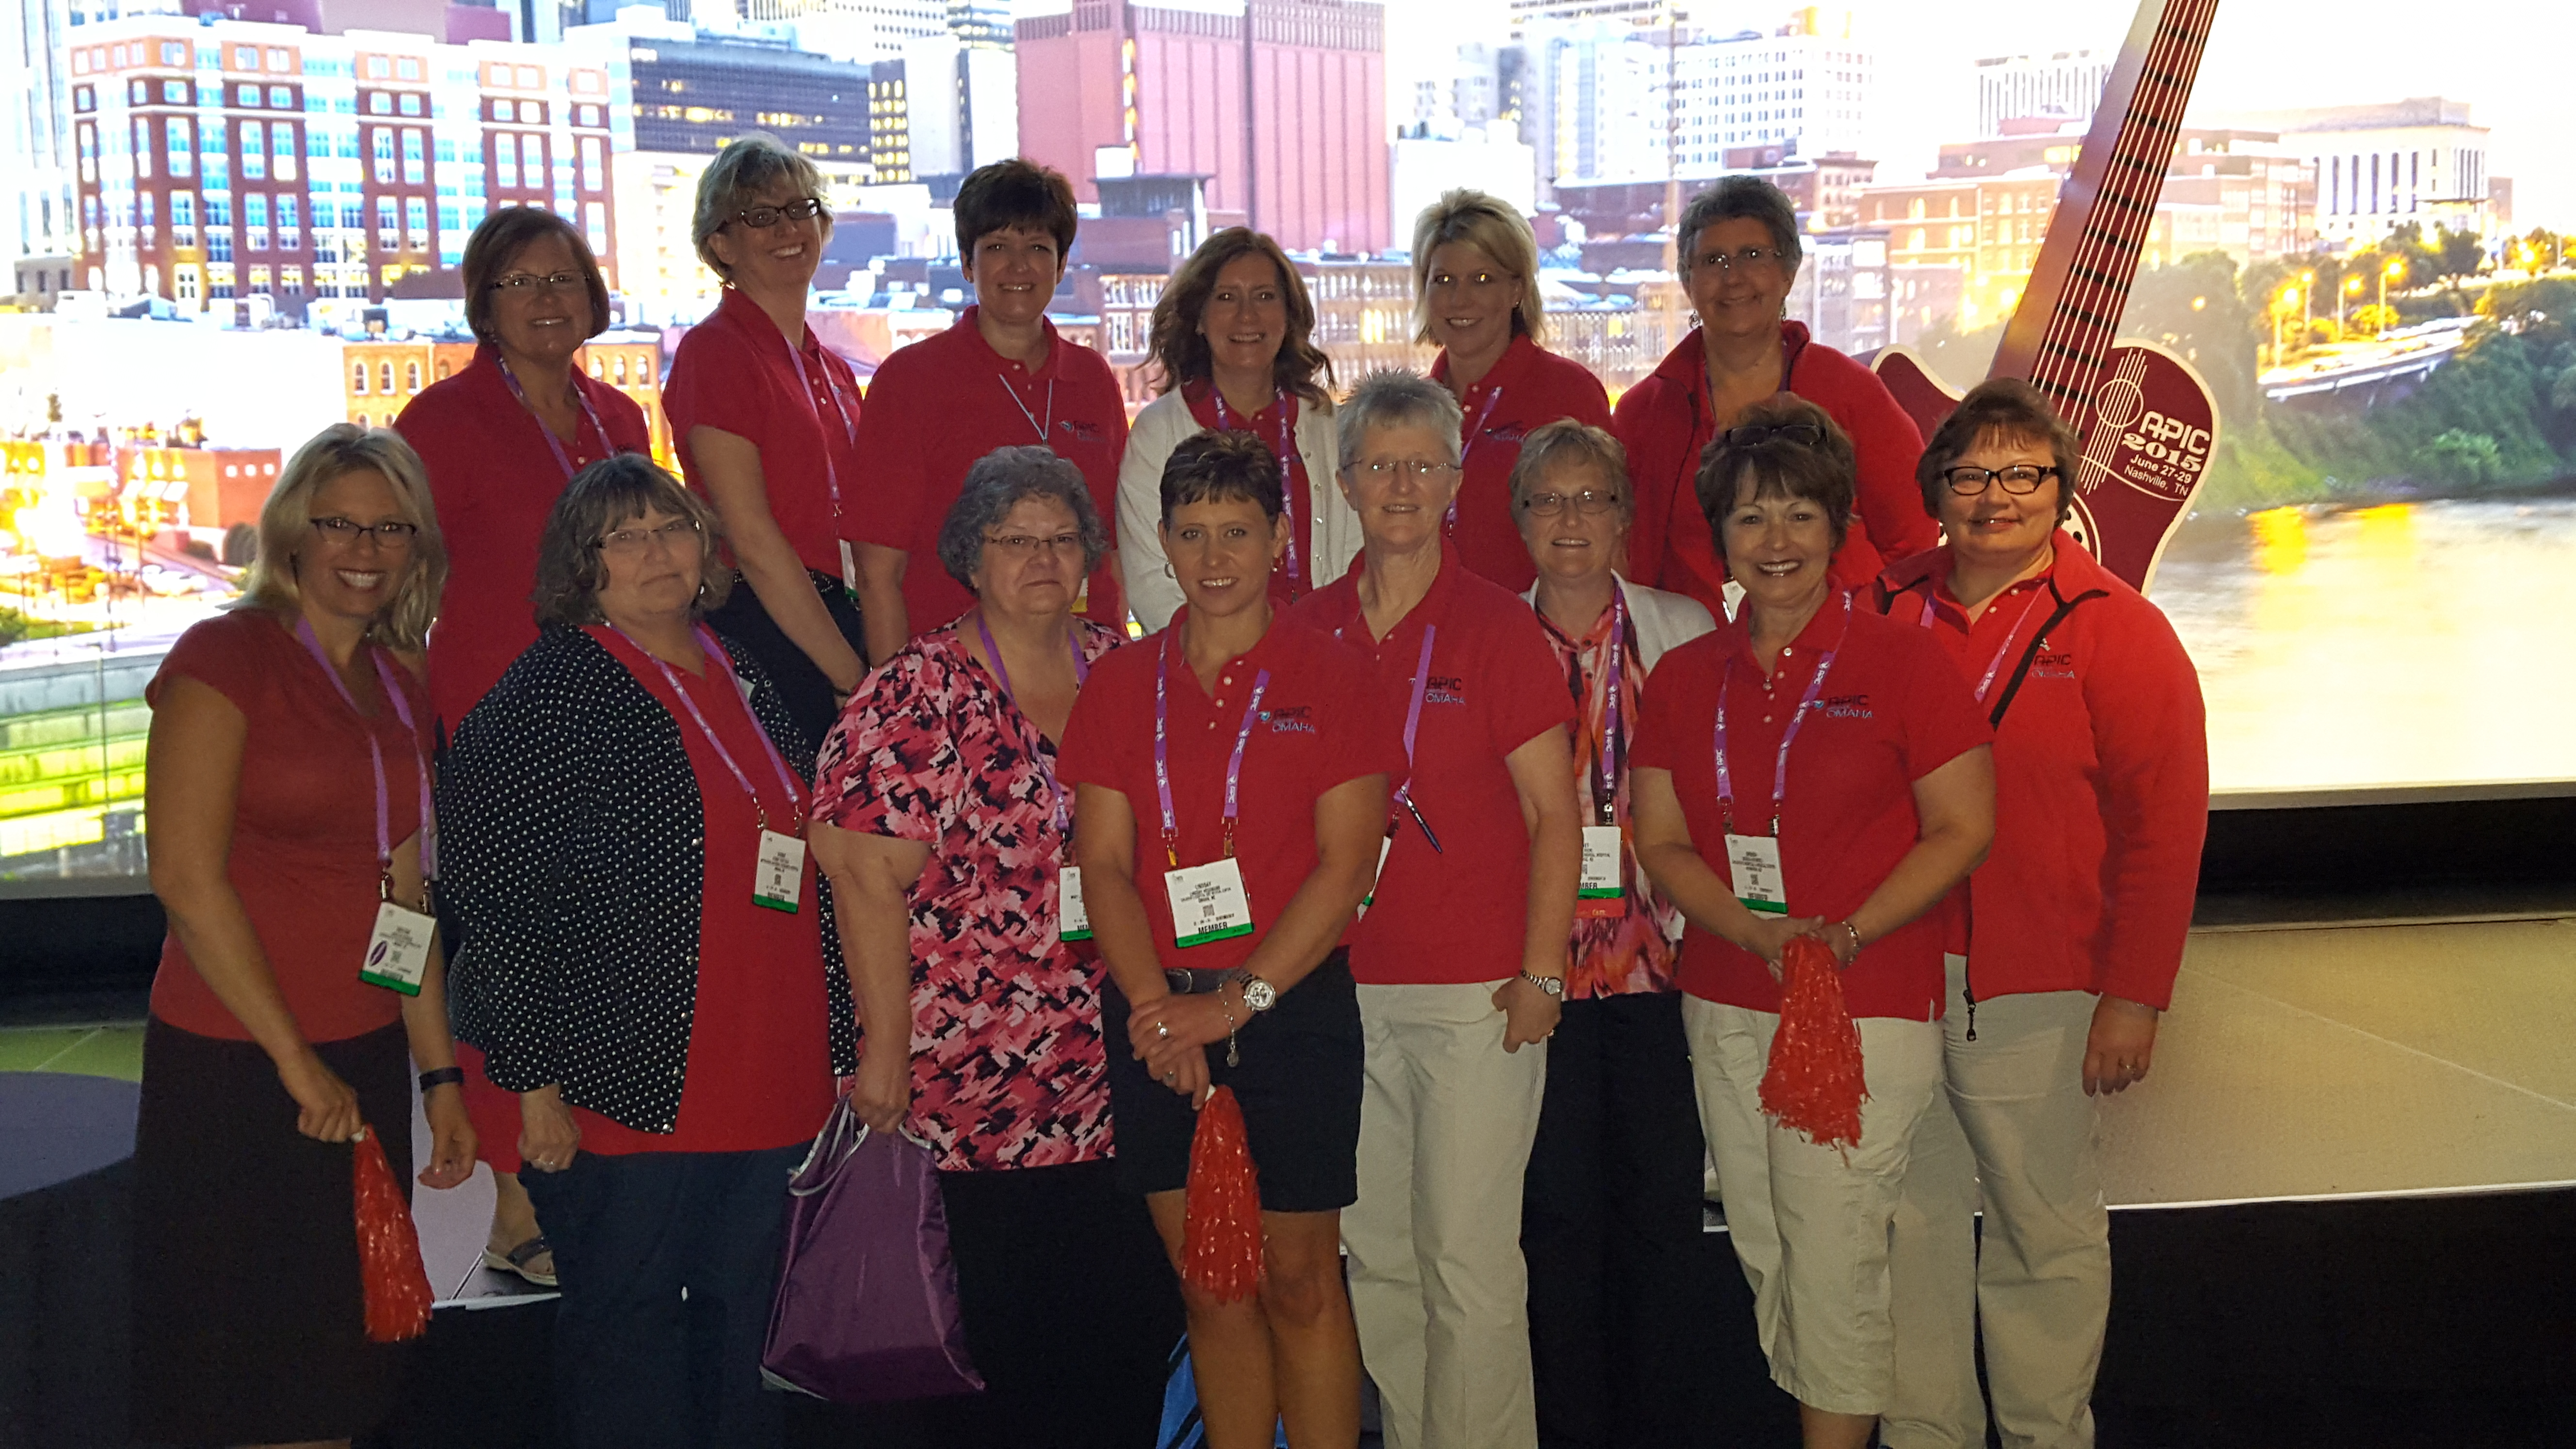 Greater Omaha APIC members at the 2015 Convention